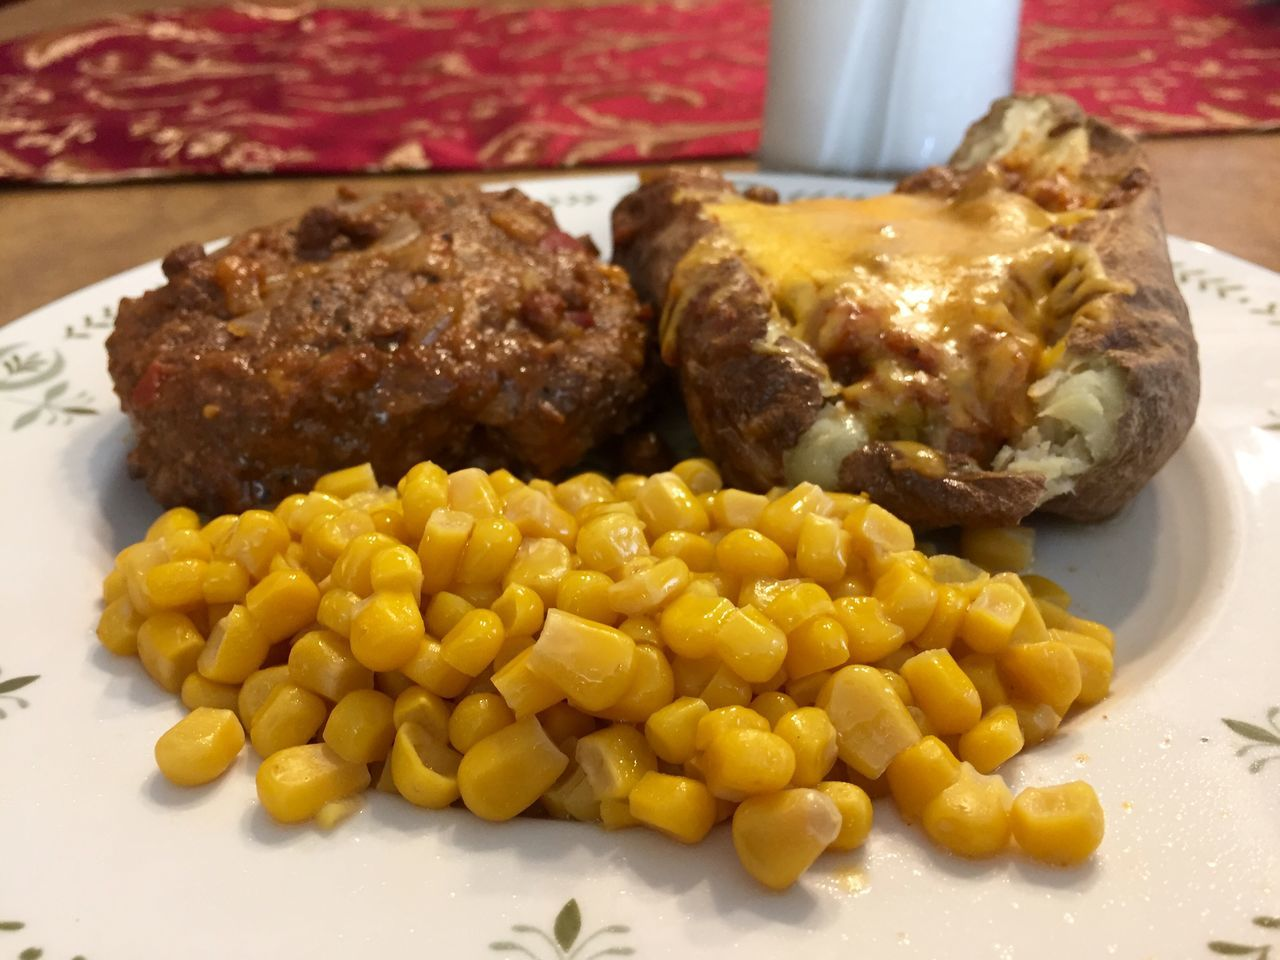 Hamburger Steak and baked potato covered with chili. Abundance Baked Potato Cheese Chili  Close-up Corn Food Freshness Hamburger Hamburger Steak Healthy Eating Indulgence Meal Milk No People Organic Potato Potato Ready-to-eat Selective Focus Serving Size Still Life Sweetcorn